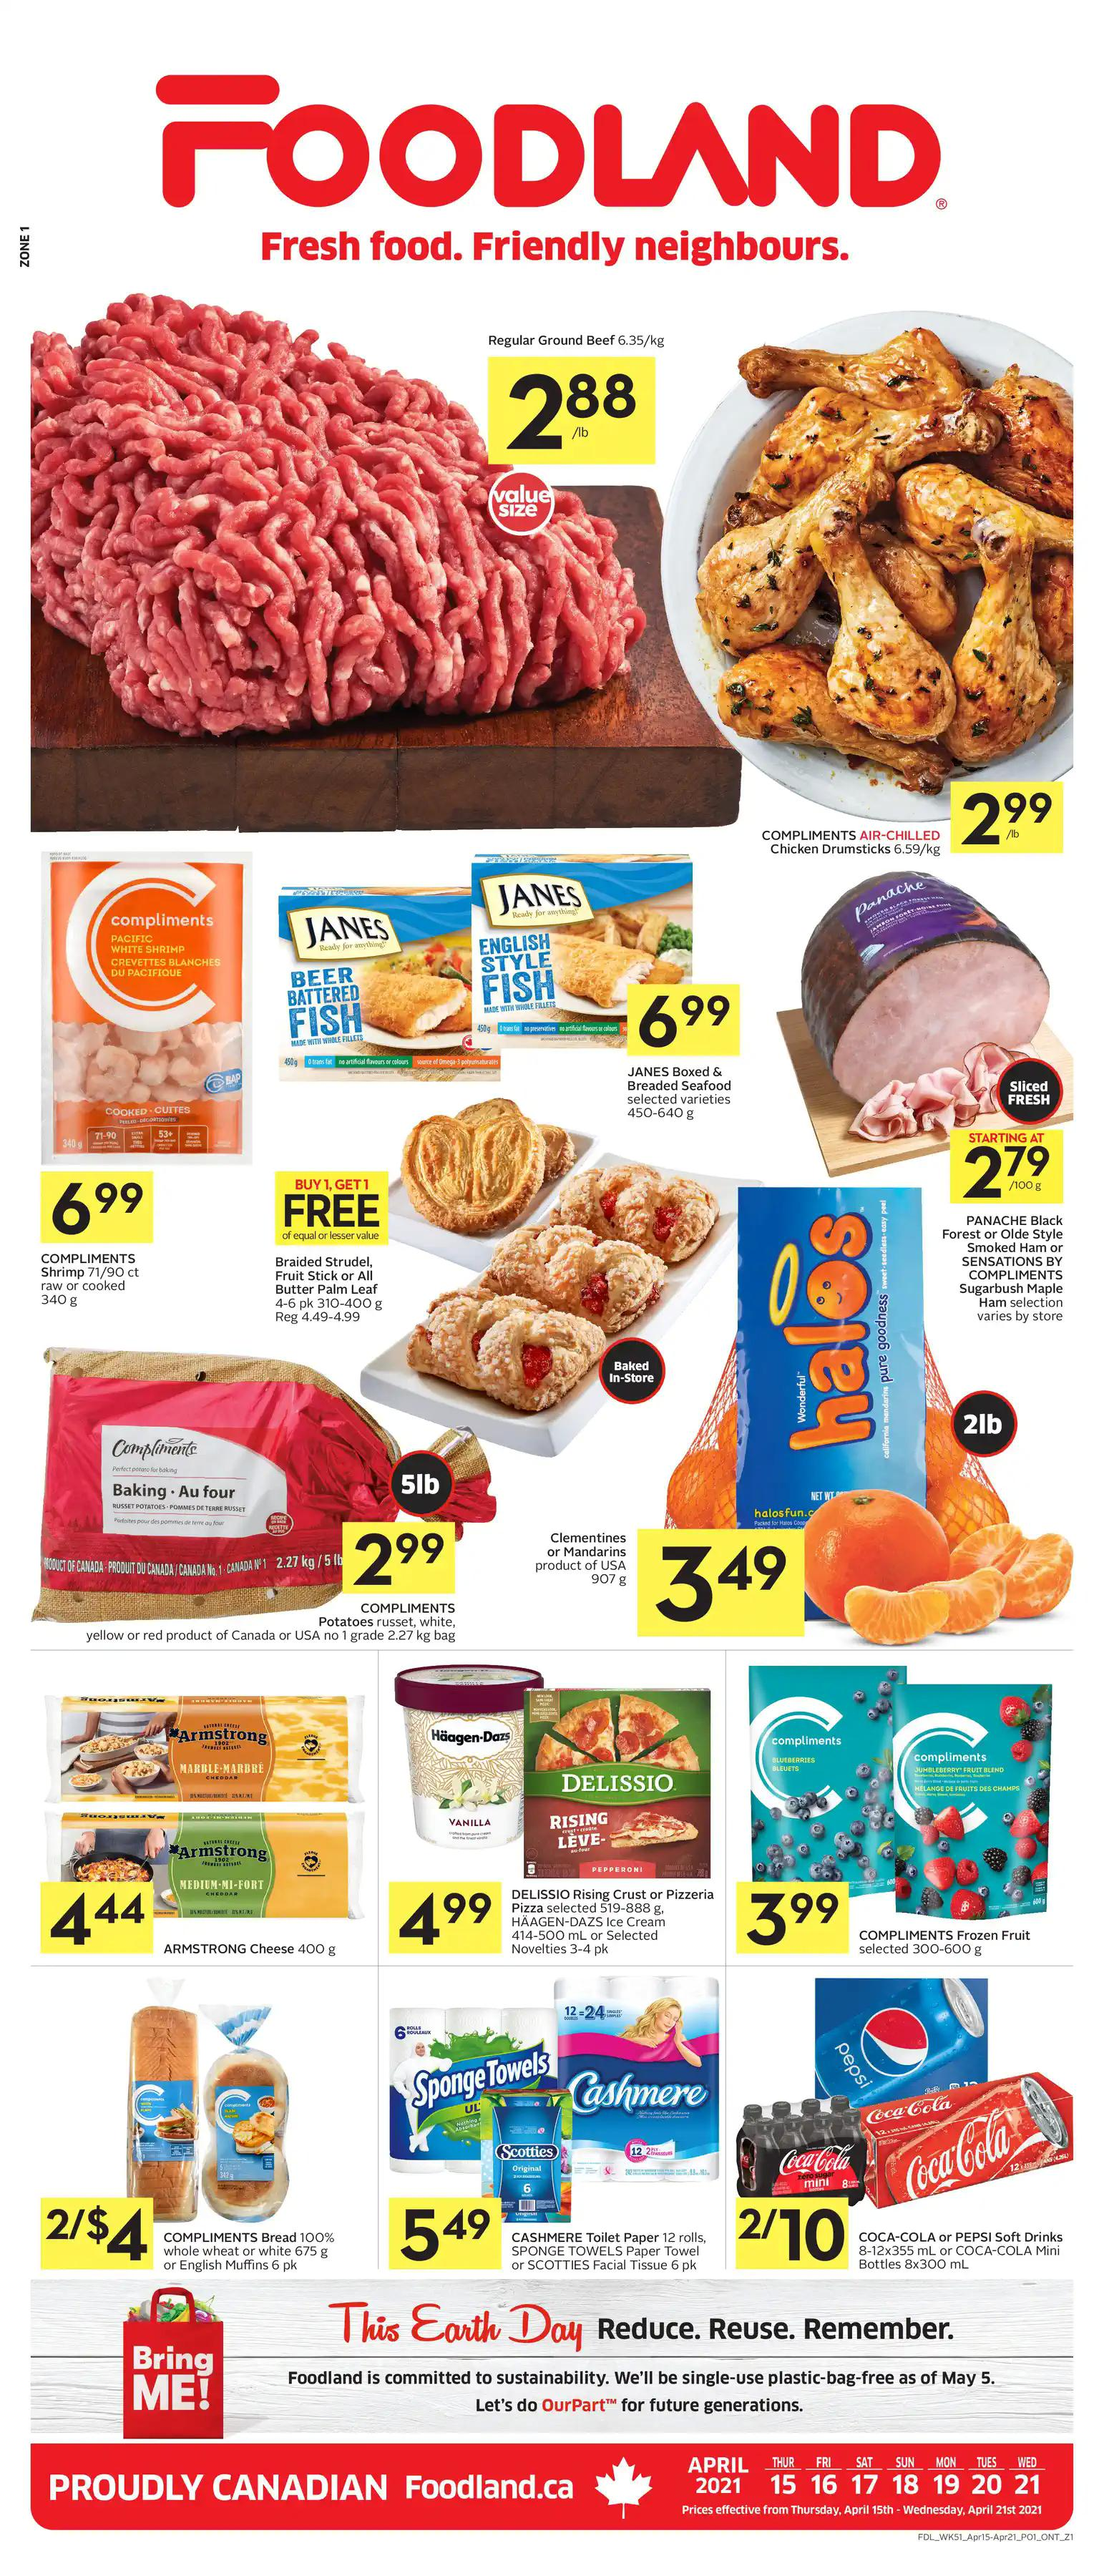 Foodland - Weekly Flyer Specials